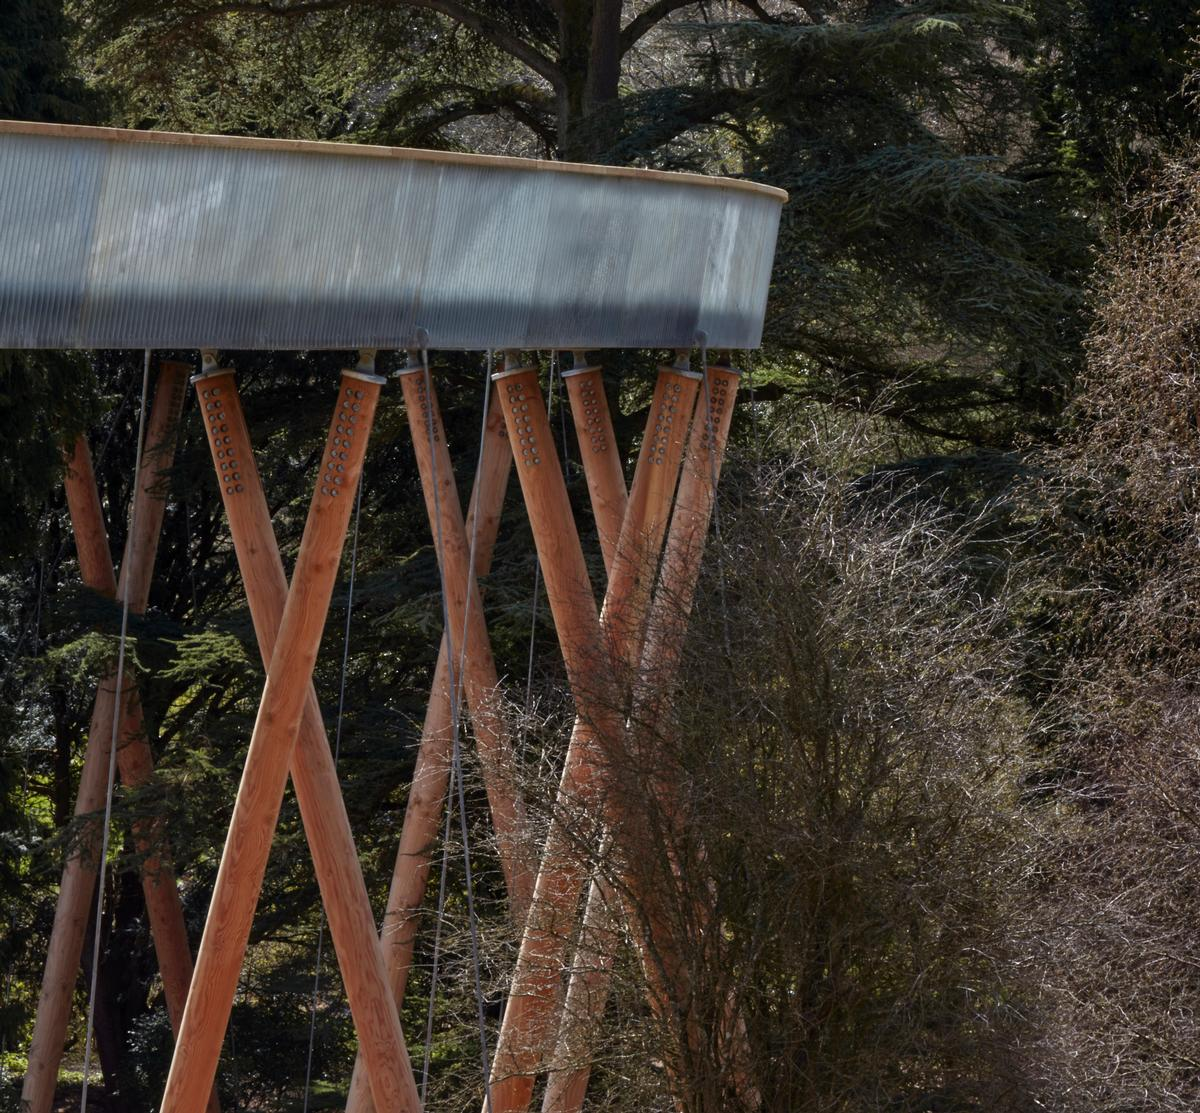 Materials have been chosen to complement the surroundings, such as timber legs that will age over time / Rob Parrish